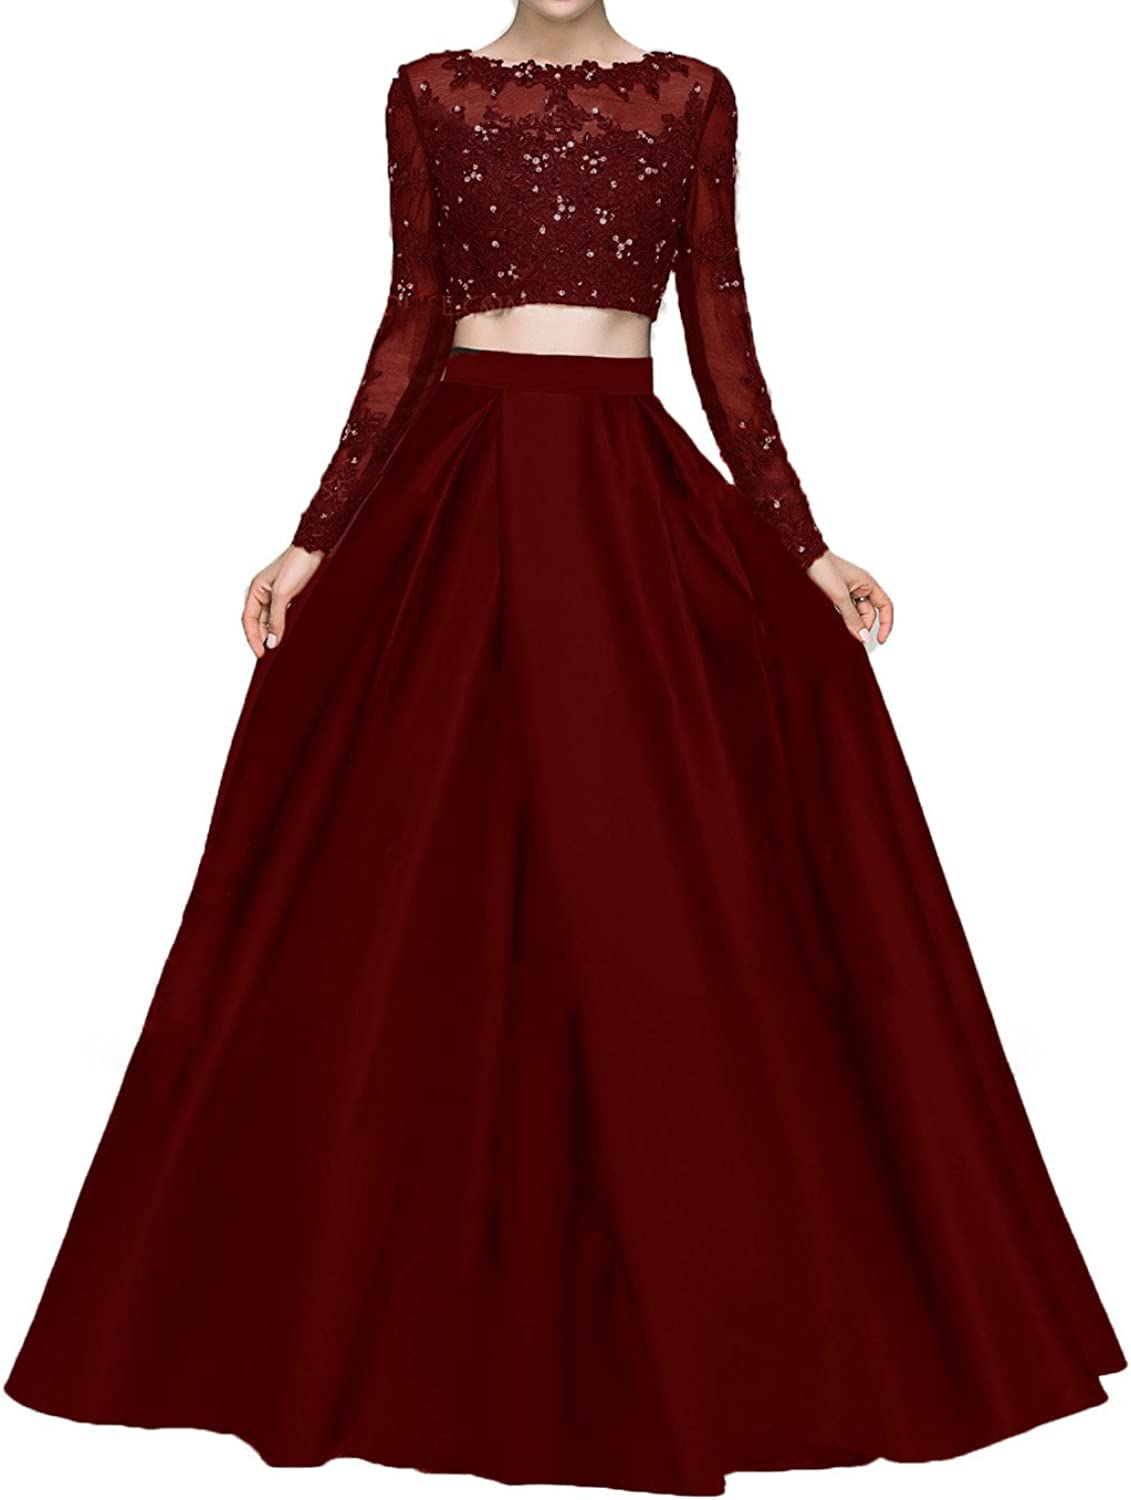 Bonnie Beaded Lace Bodice Two Piece Prom Dresses 2018 Long Sleeves Evening Party Ball Gowns BS001